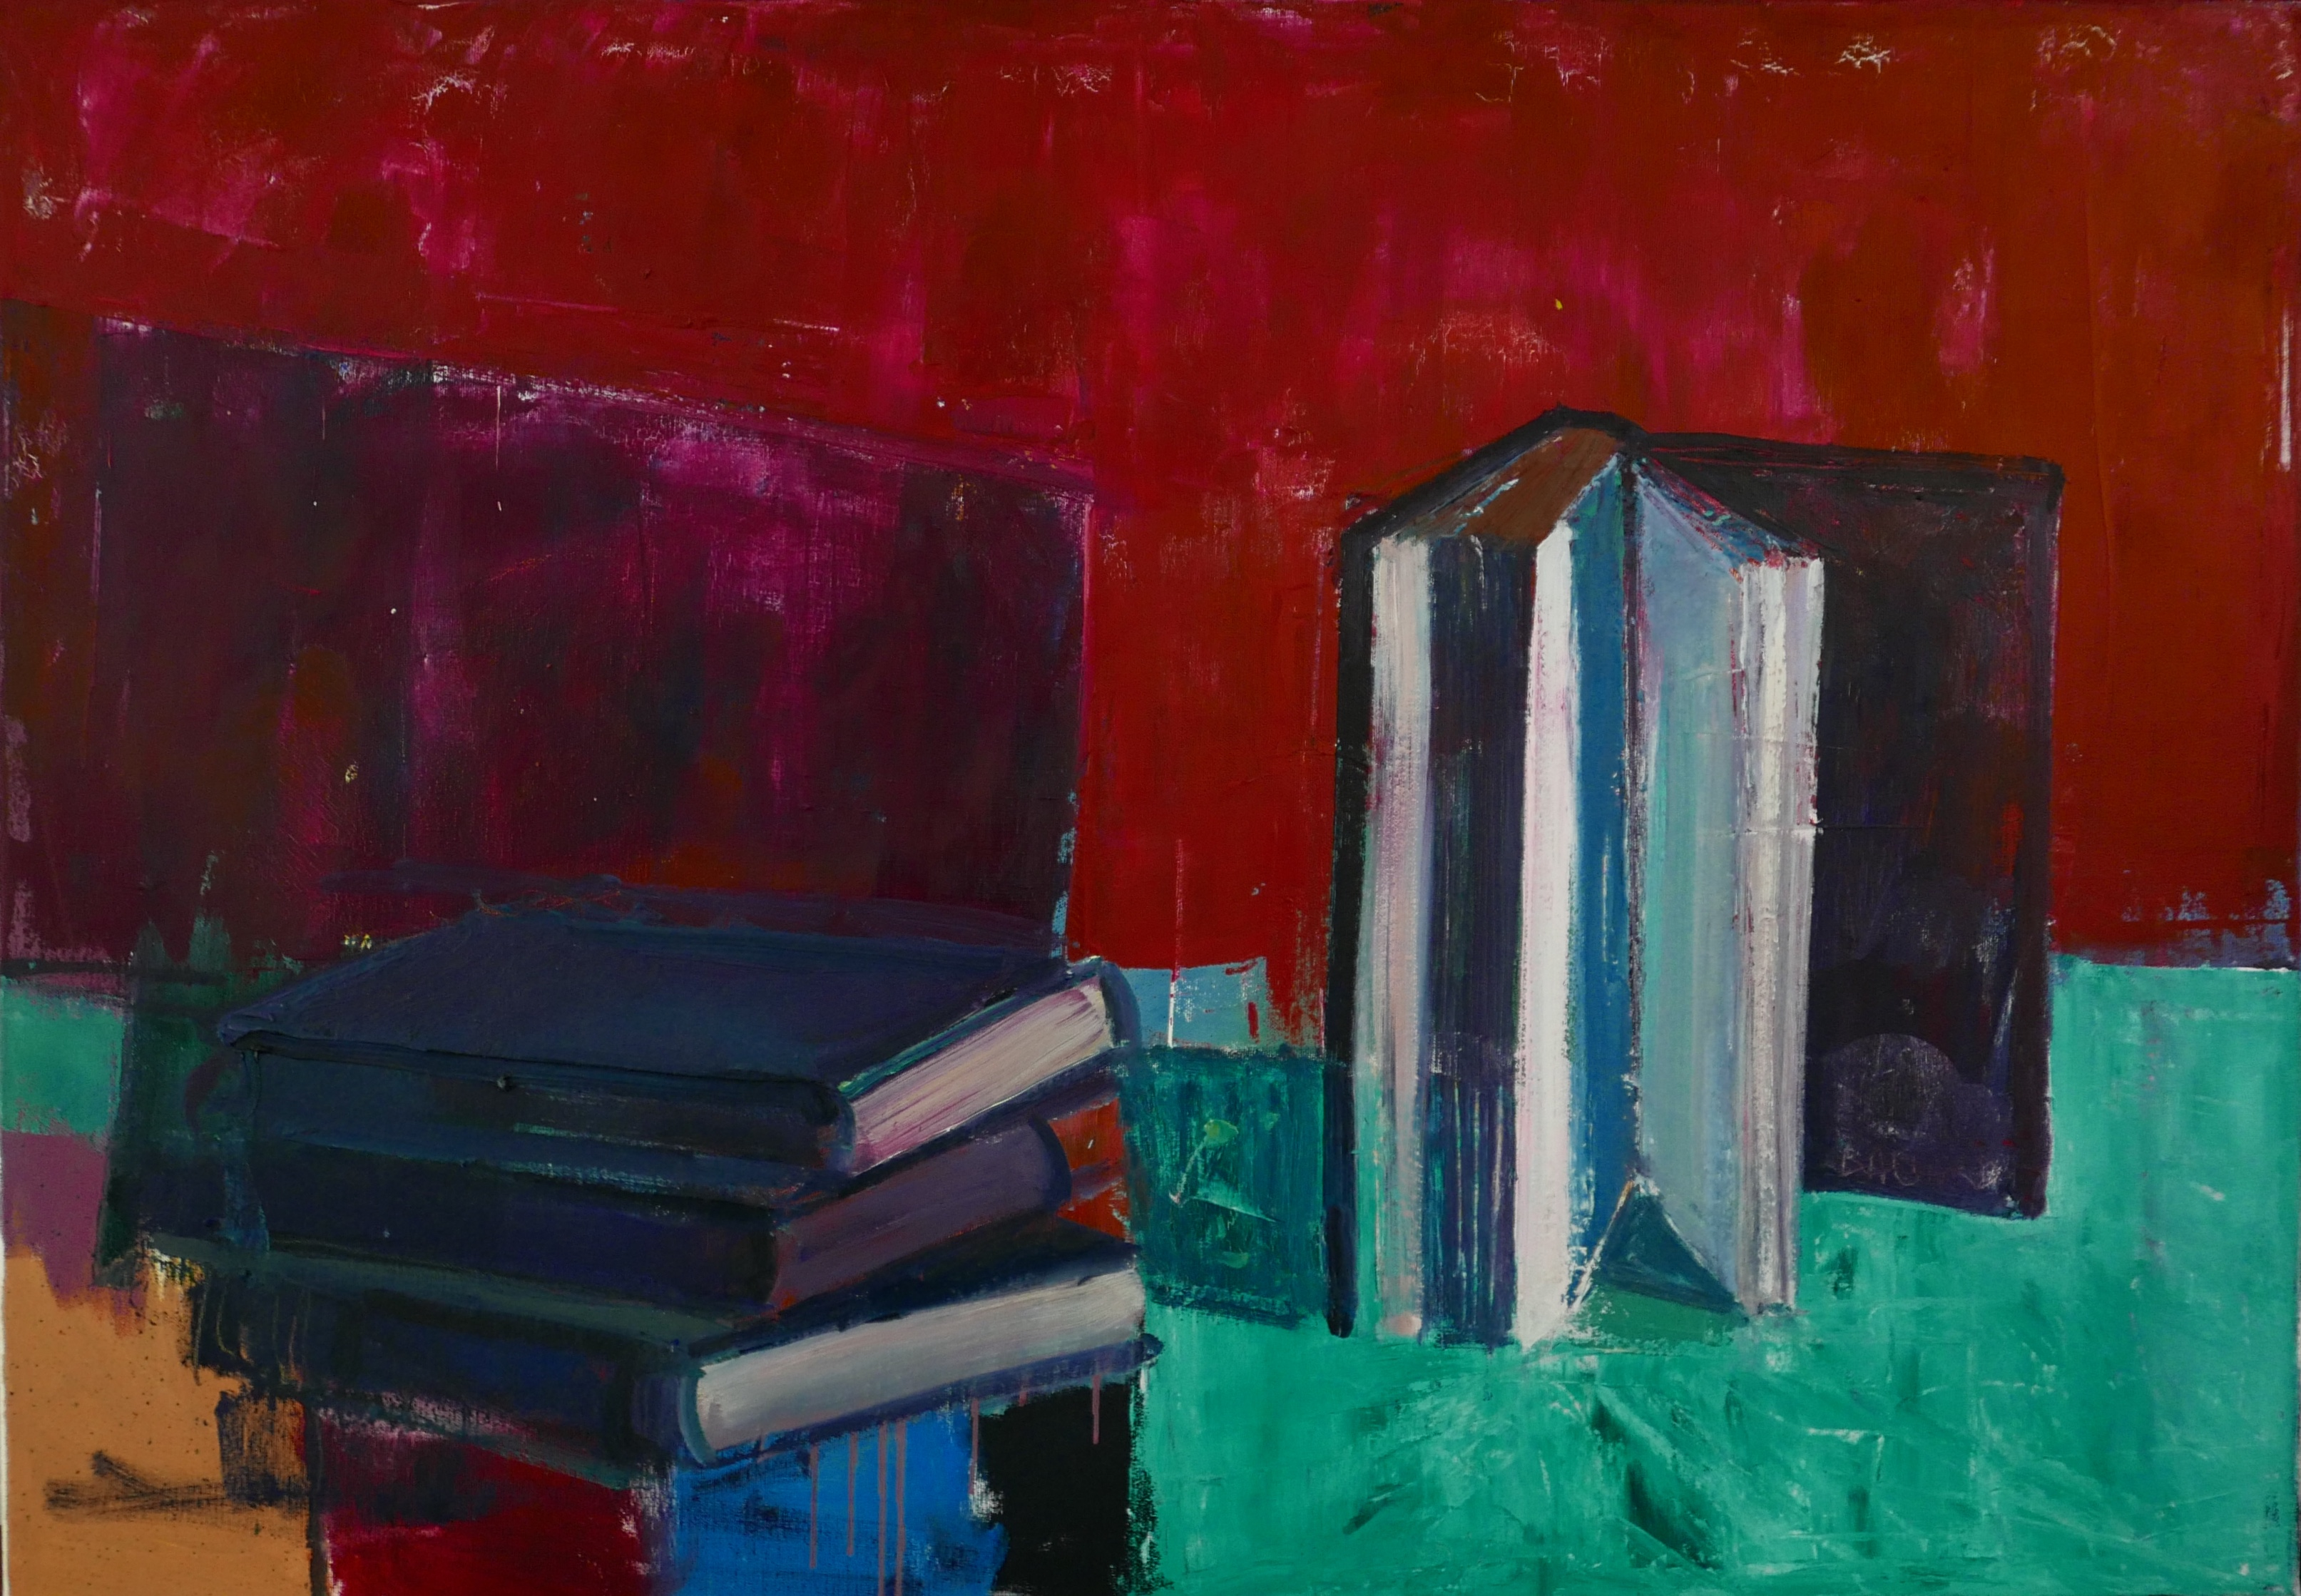 'Books on Green', oil on canvas, 70cm  x 100cm, £7000